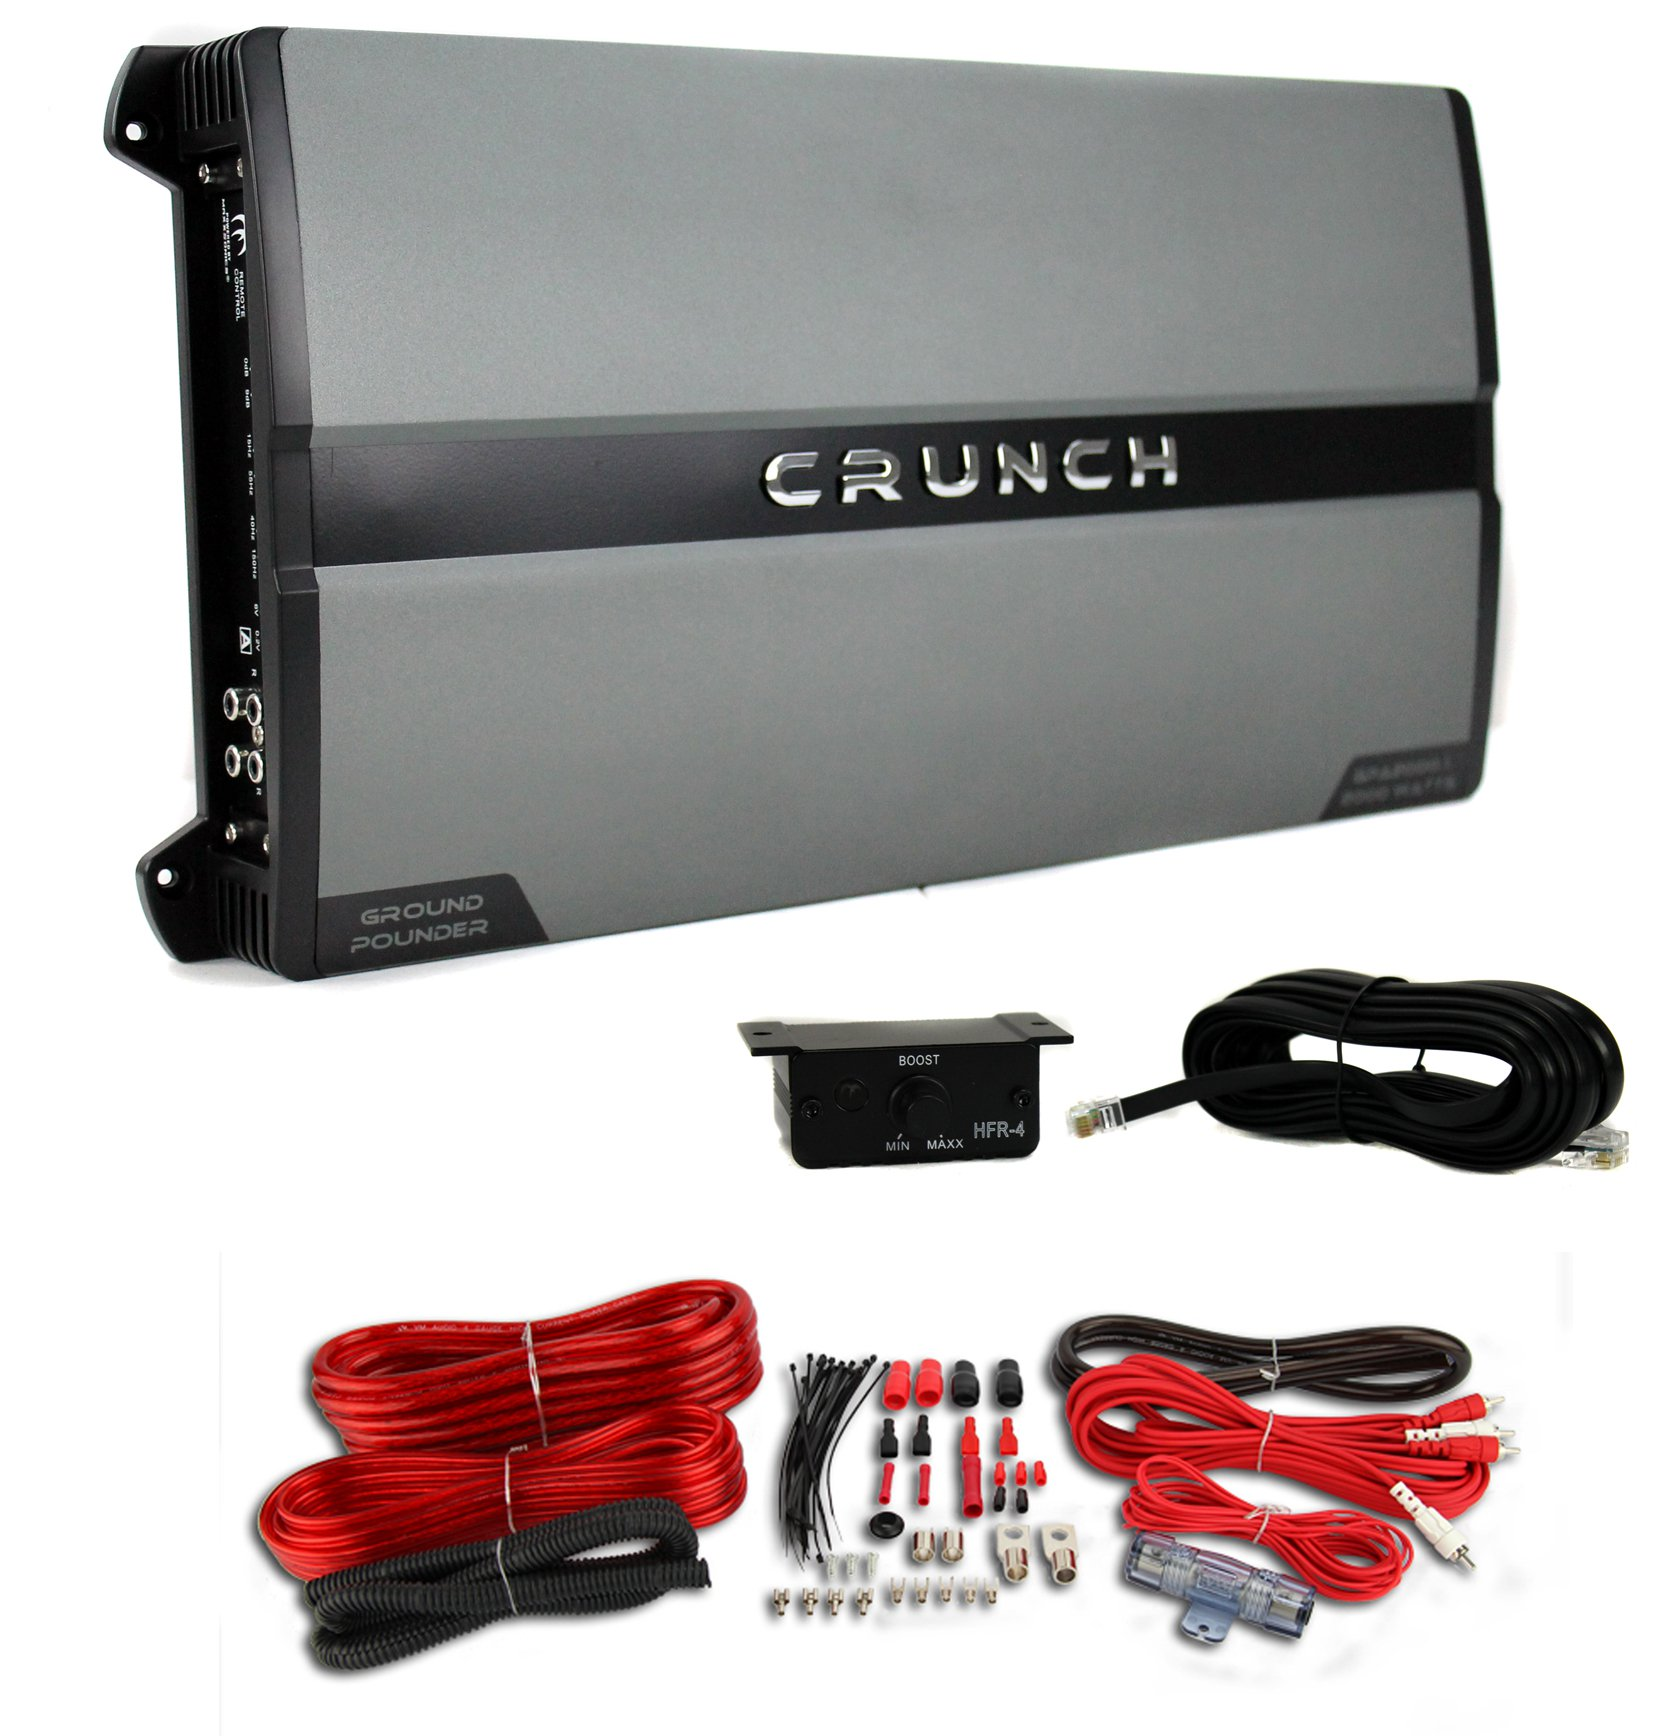 crunch gpa2000 1 2000 watt 1 ohm stable car mono amplifier 4 gauge rh walmart com